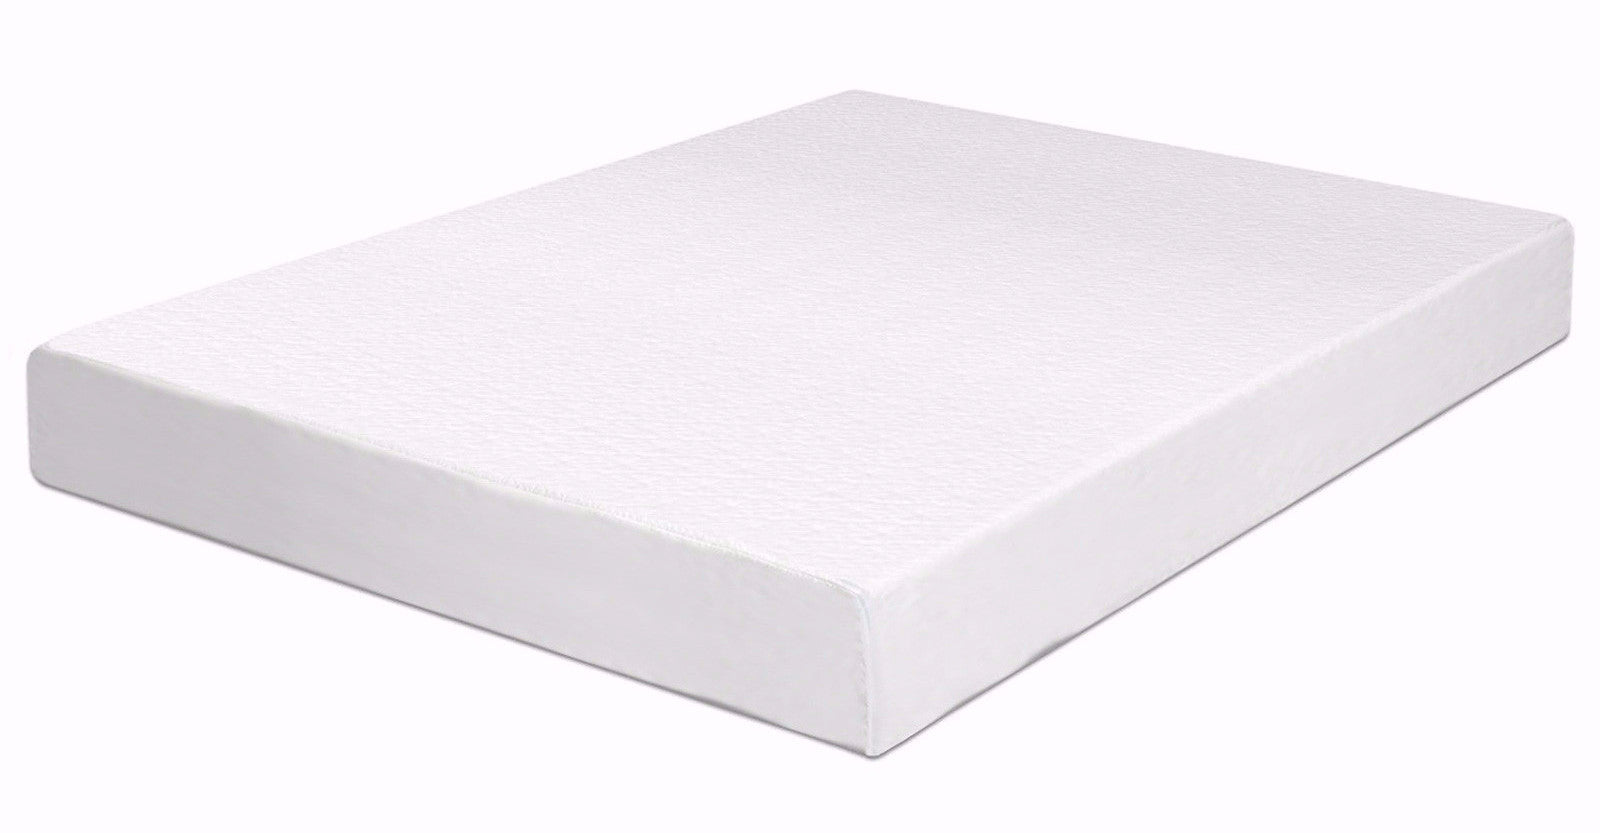 espuma 6 inch high density memory foam mattress